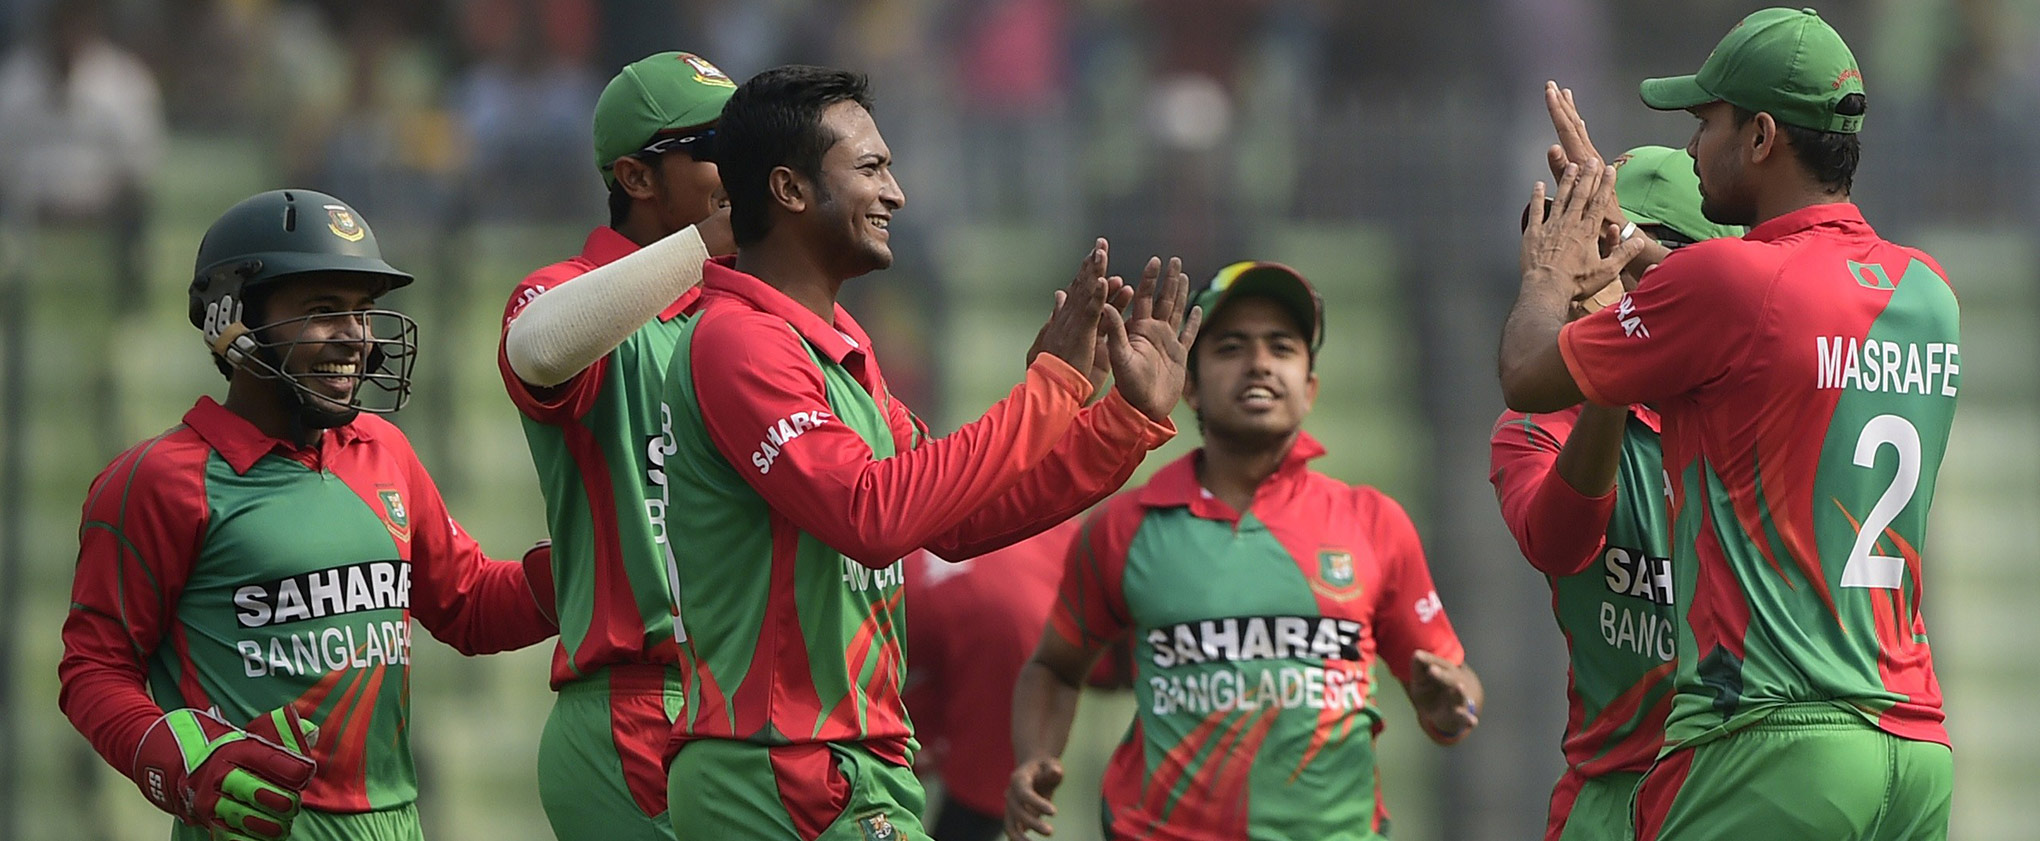 cricket in bangladesh Willow has exclusive agreements to be the official broadcaster of the international cricket council (icc), the board of control for cricket in india (bcci), the cricket australia, cricket.